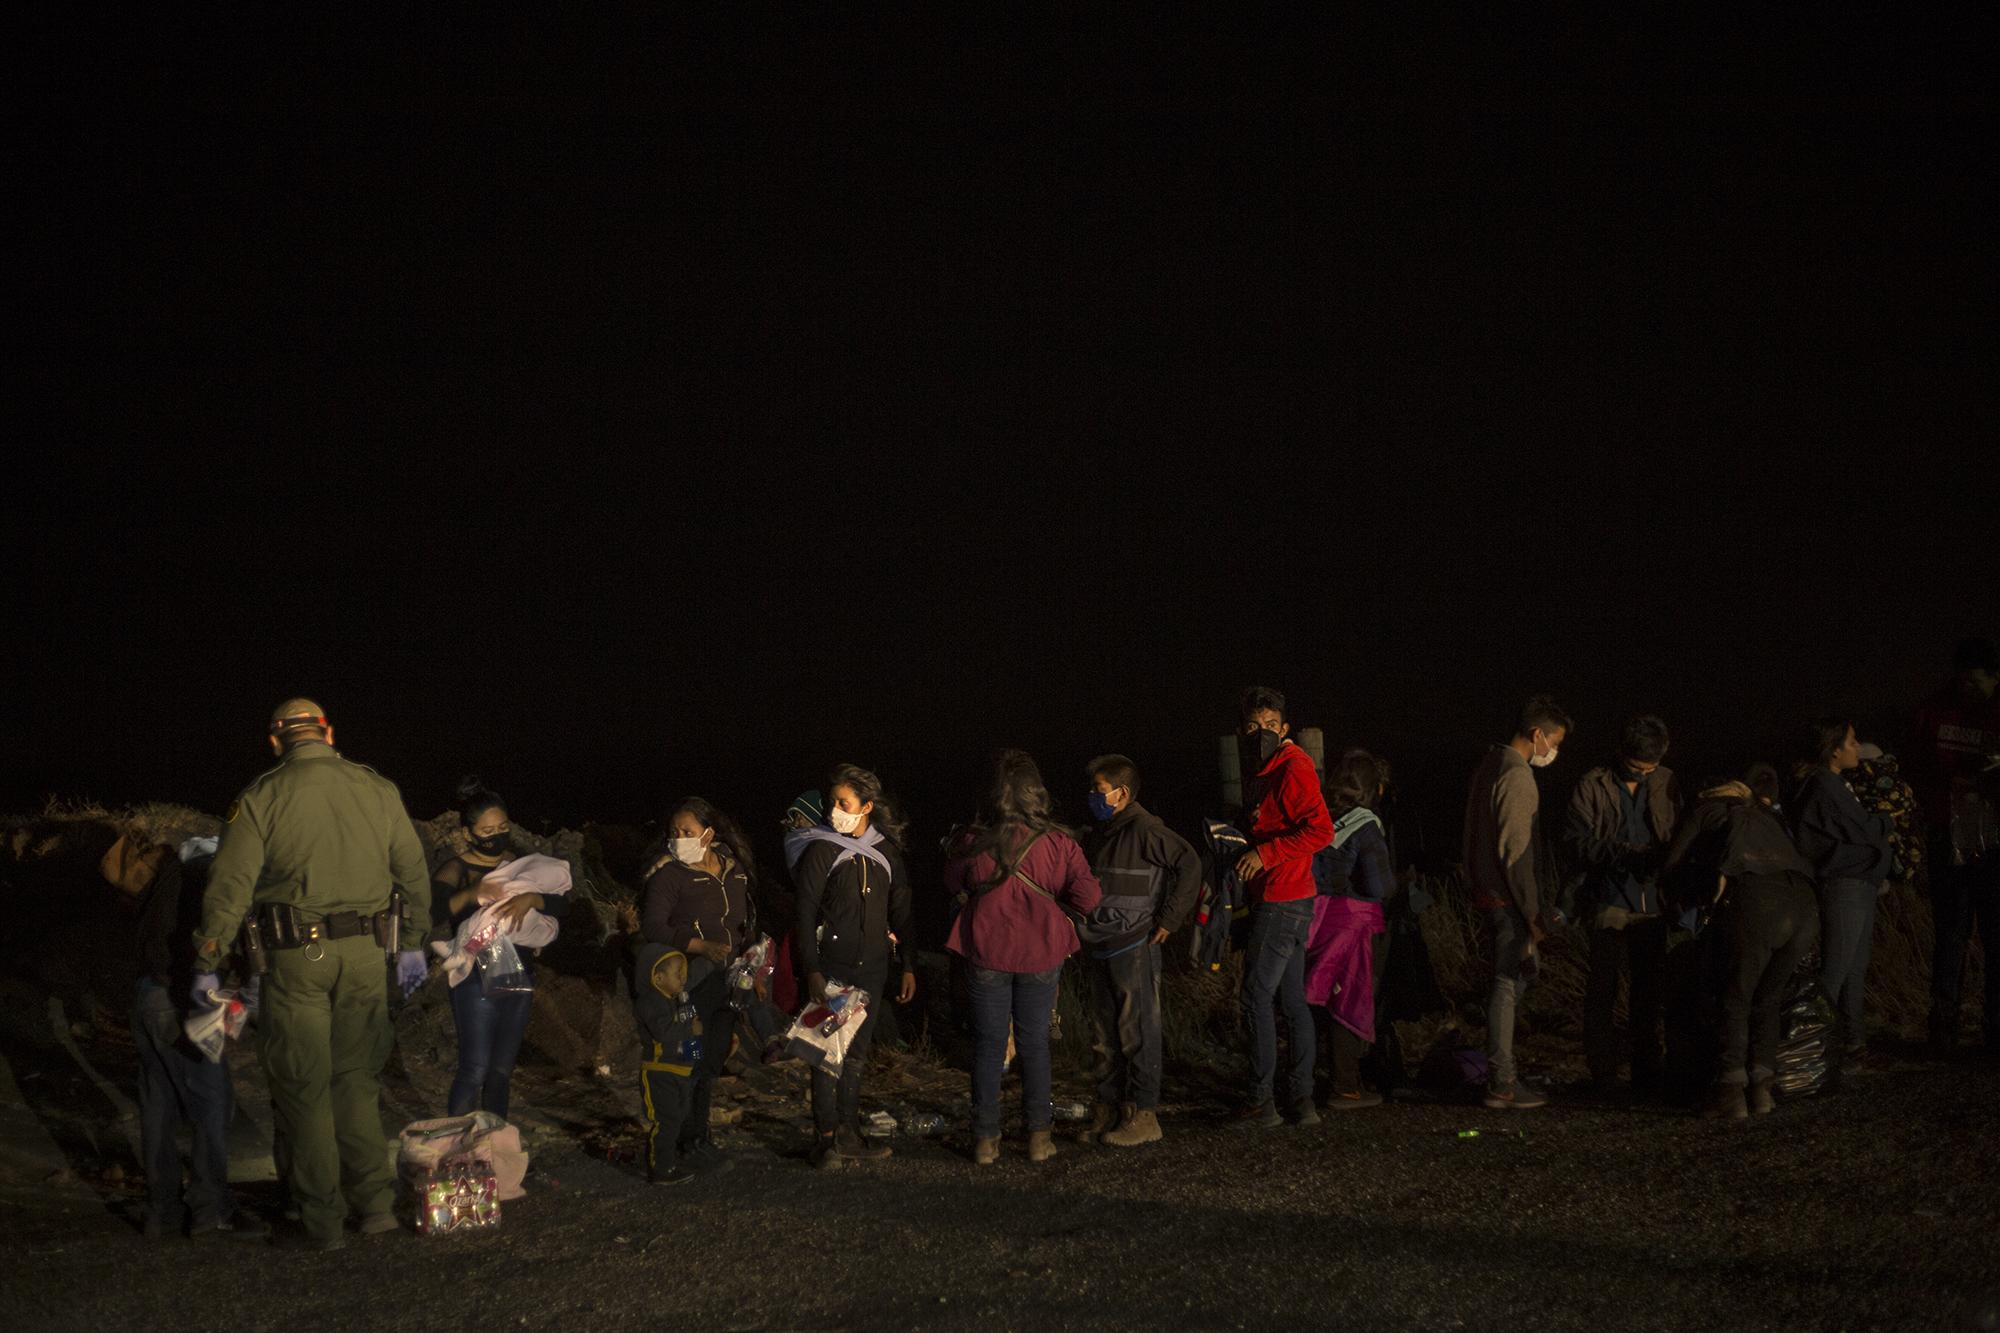 After nightfall in Roma, Texas, nobody was running to evade authorities. Groups of 5, 10, even 20 people traveled along the side of the road to turn themselves in to Border Patrol and claim asylum. Every night, agents wait for the groups of Central Americans to arrive.